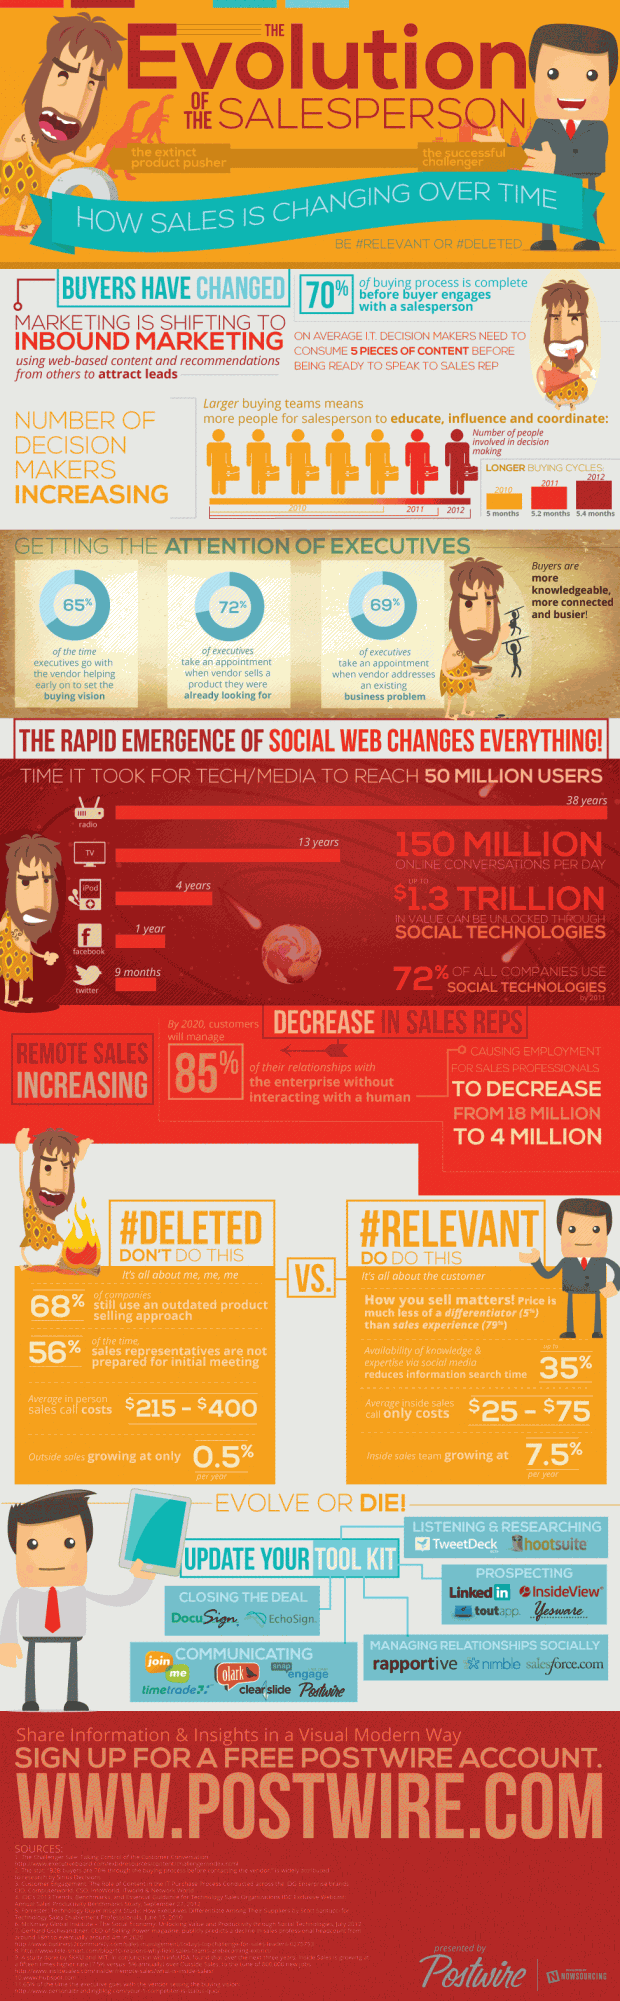 The-Evolution-Of-The-Salesperson-Infographic1